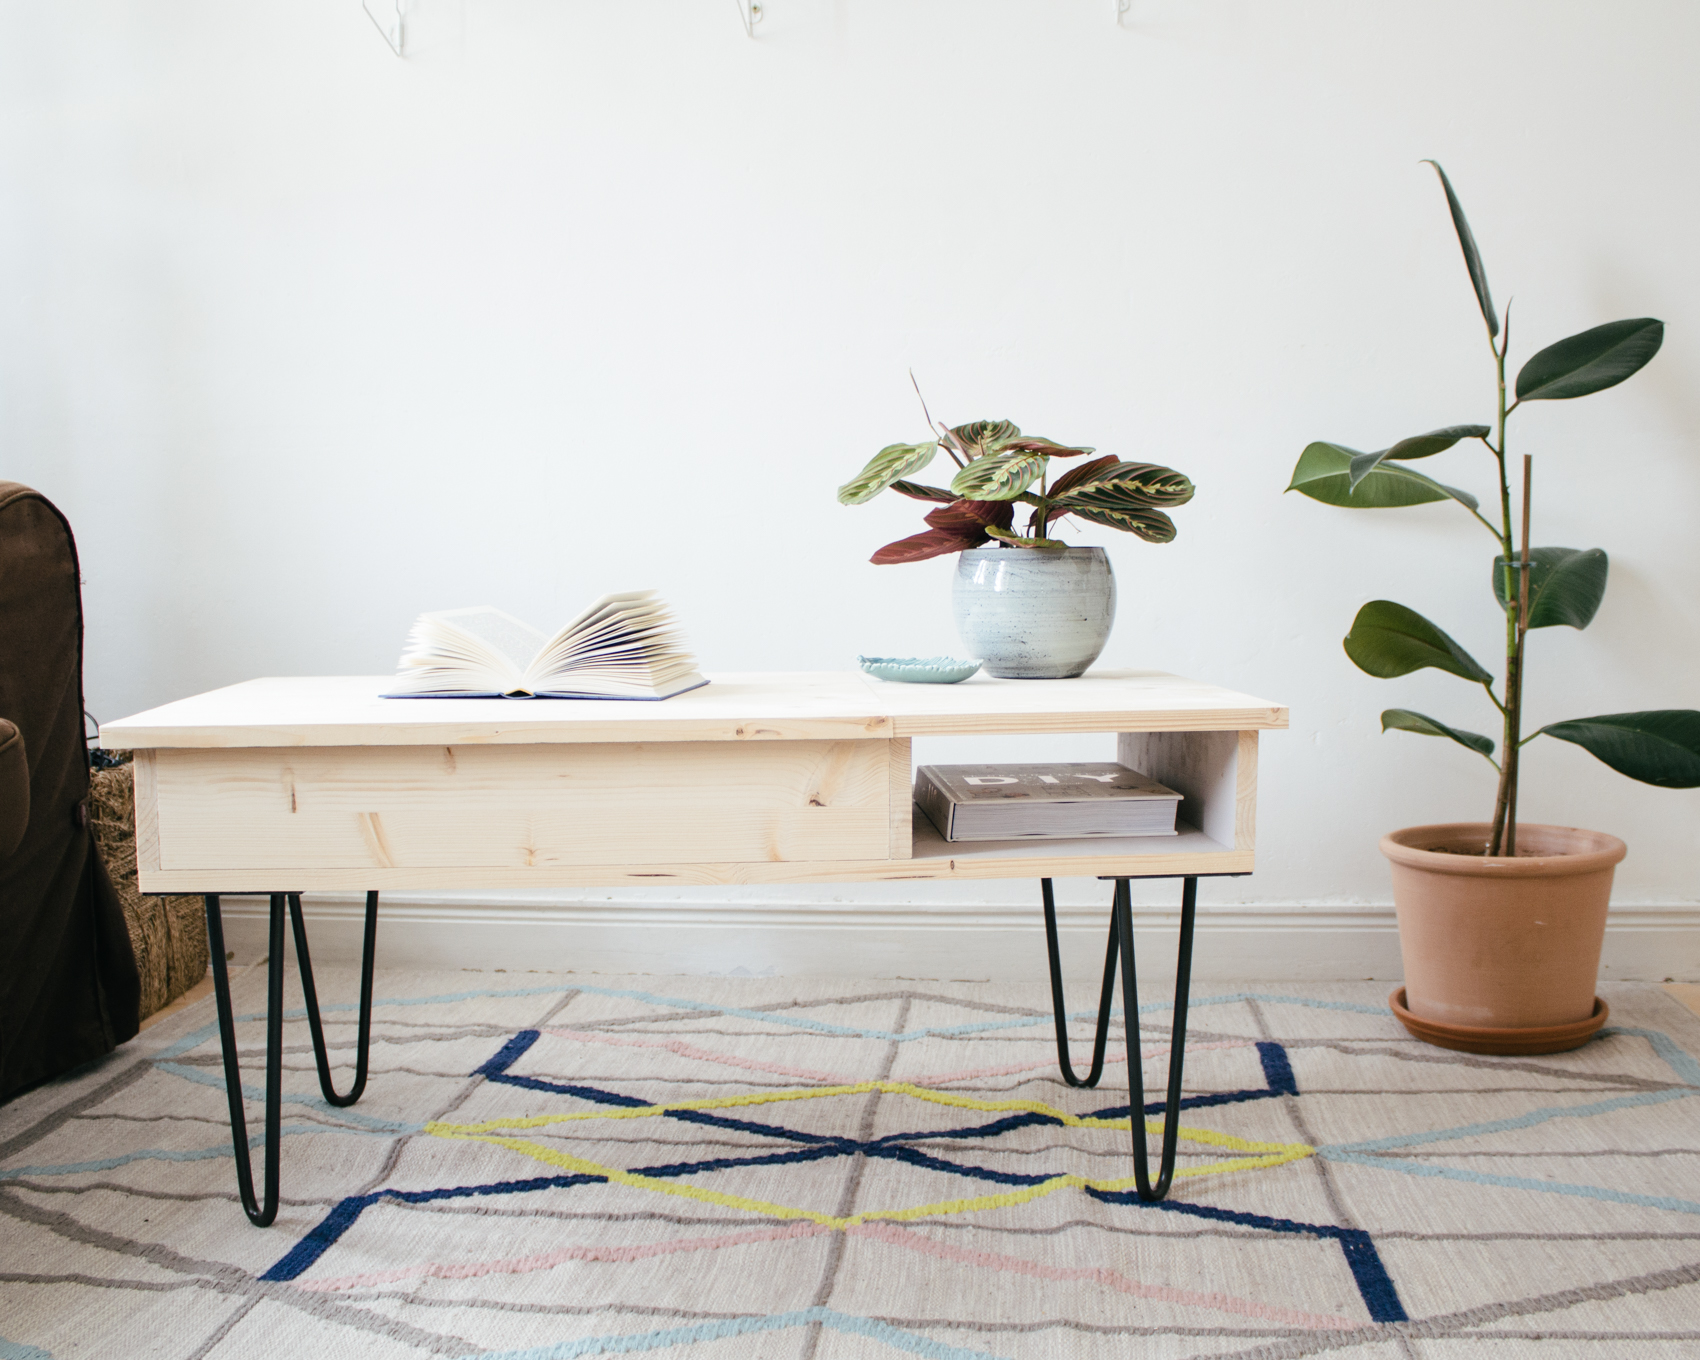 diy la table basse ses hairpin legs sans clou ni vis